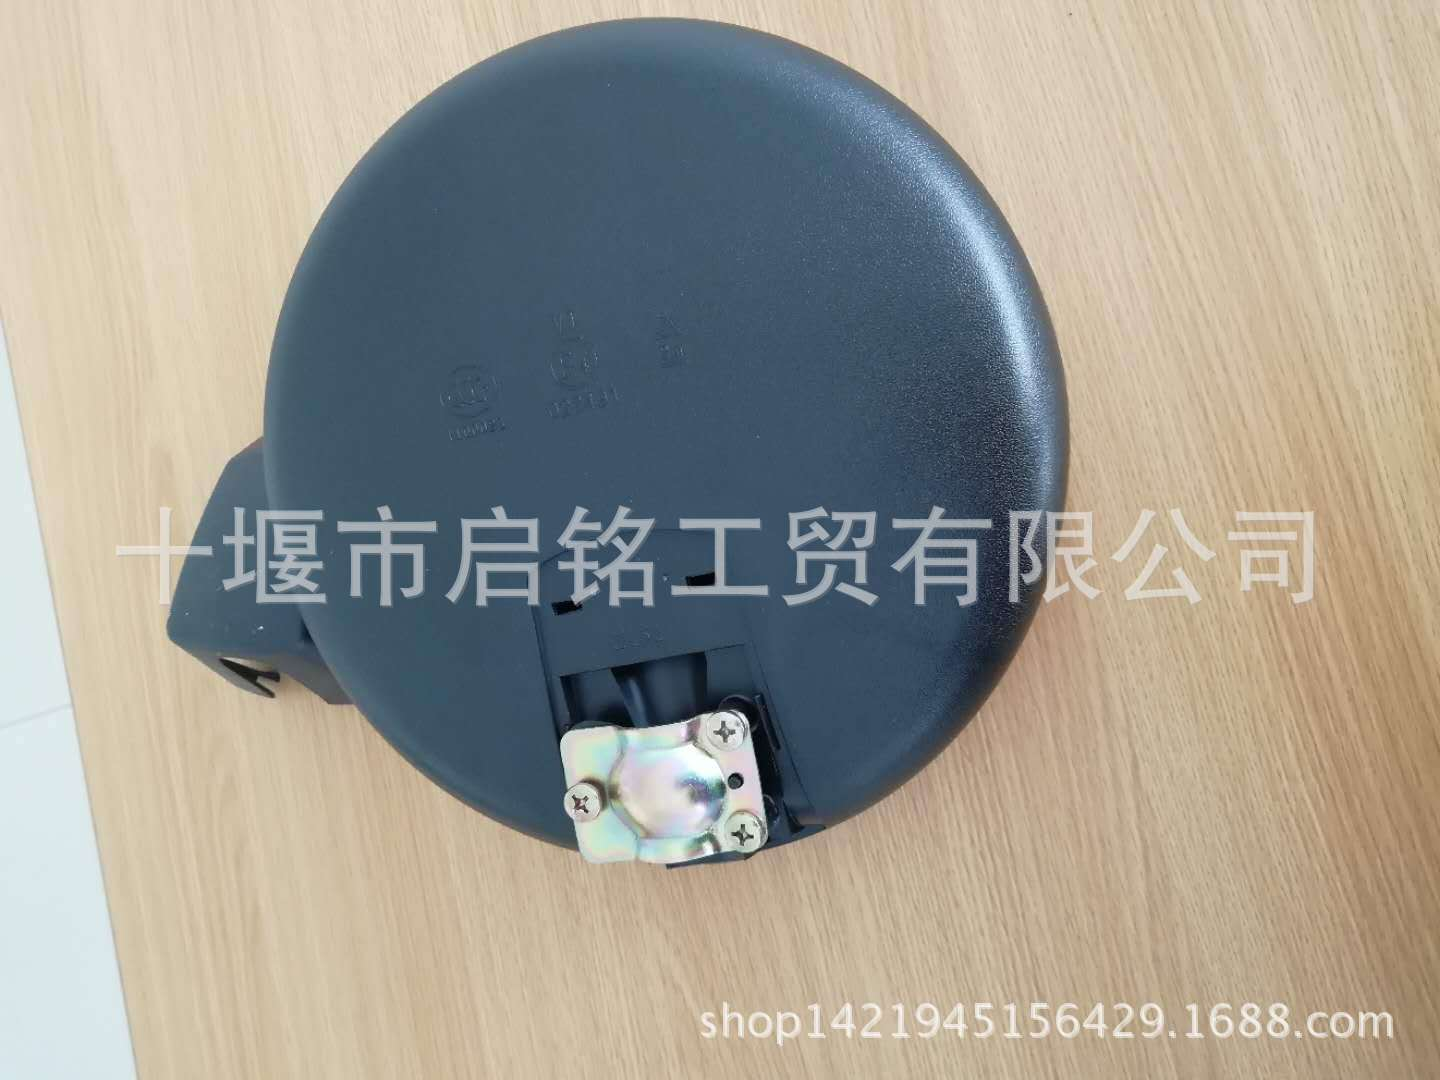 Dongfeng Second Auto Heavy Truck Accessories Tianlong Tianjin Bros. Hercules Cab Front View Mirror Round Mirror 8219010-C010